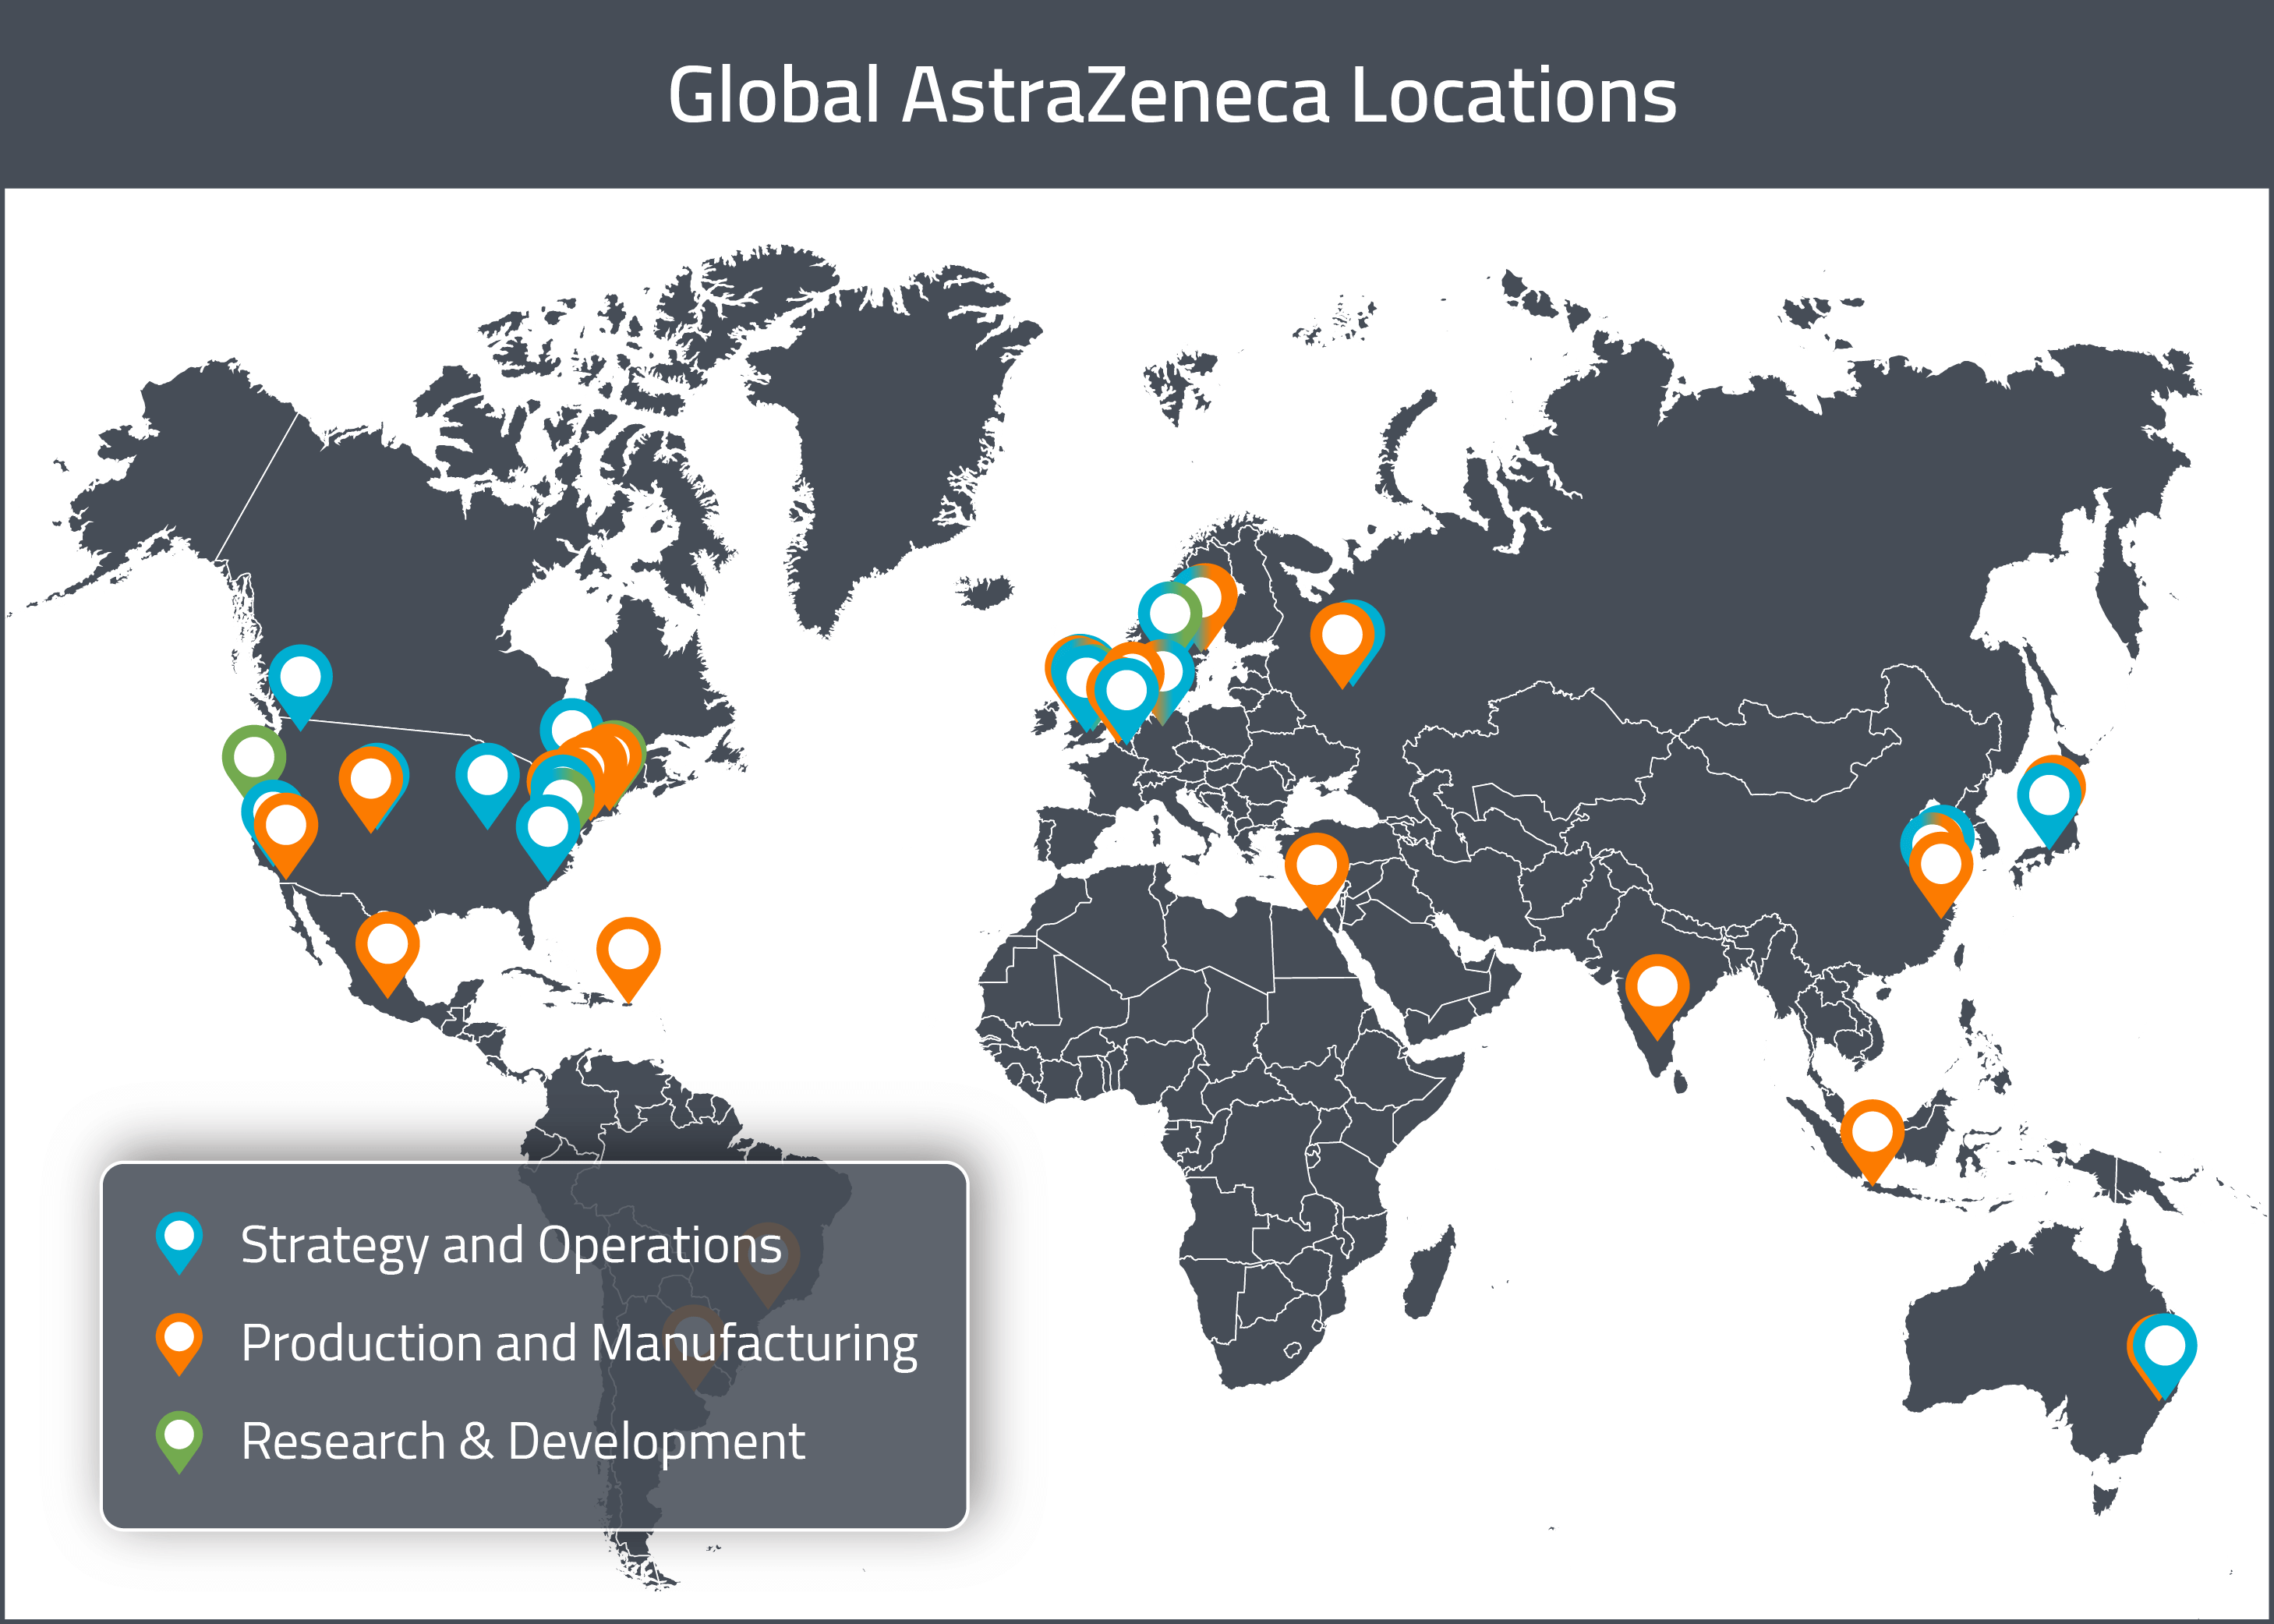 A map of AstraZeneca's global drug development locations